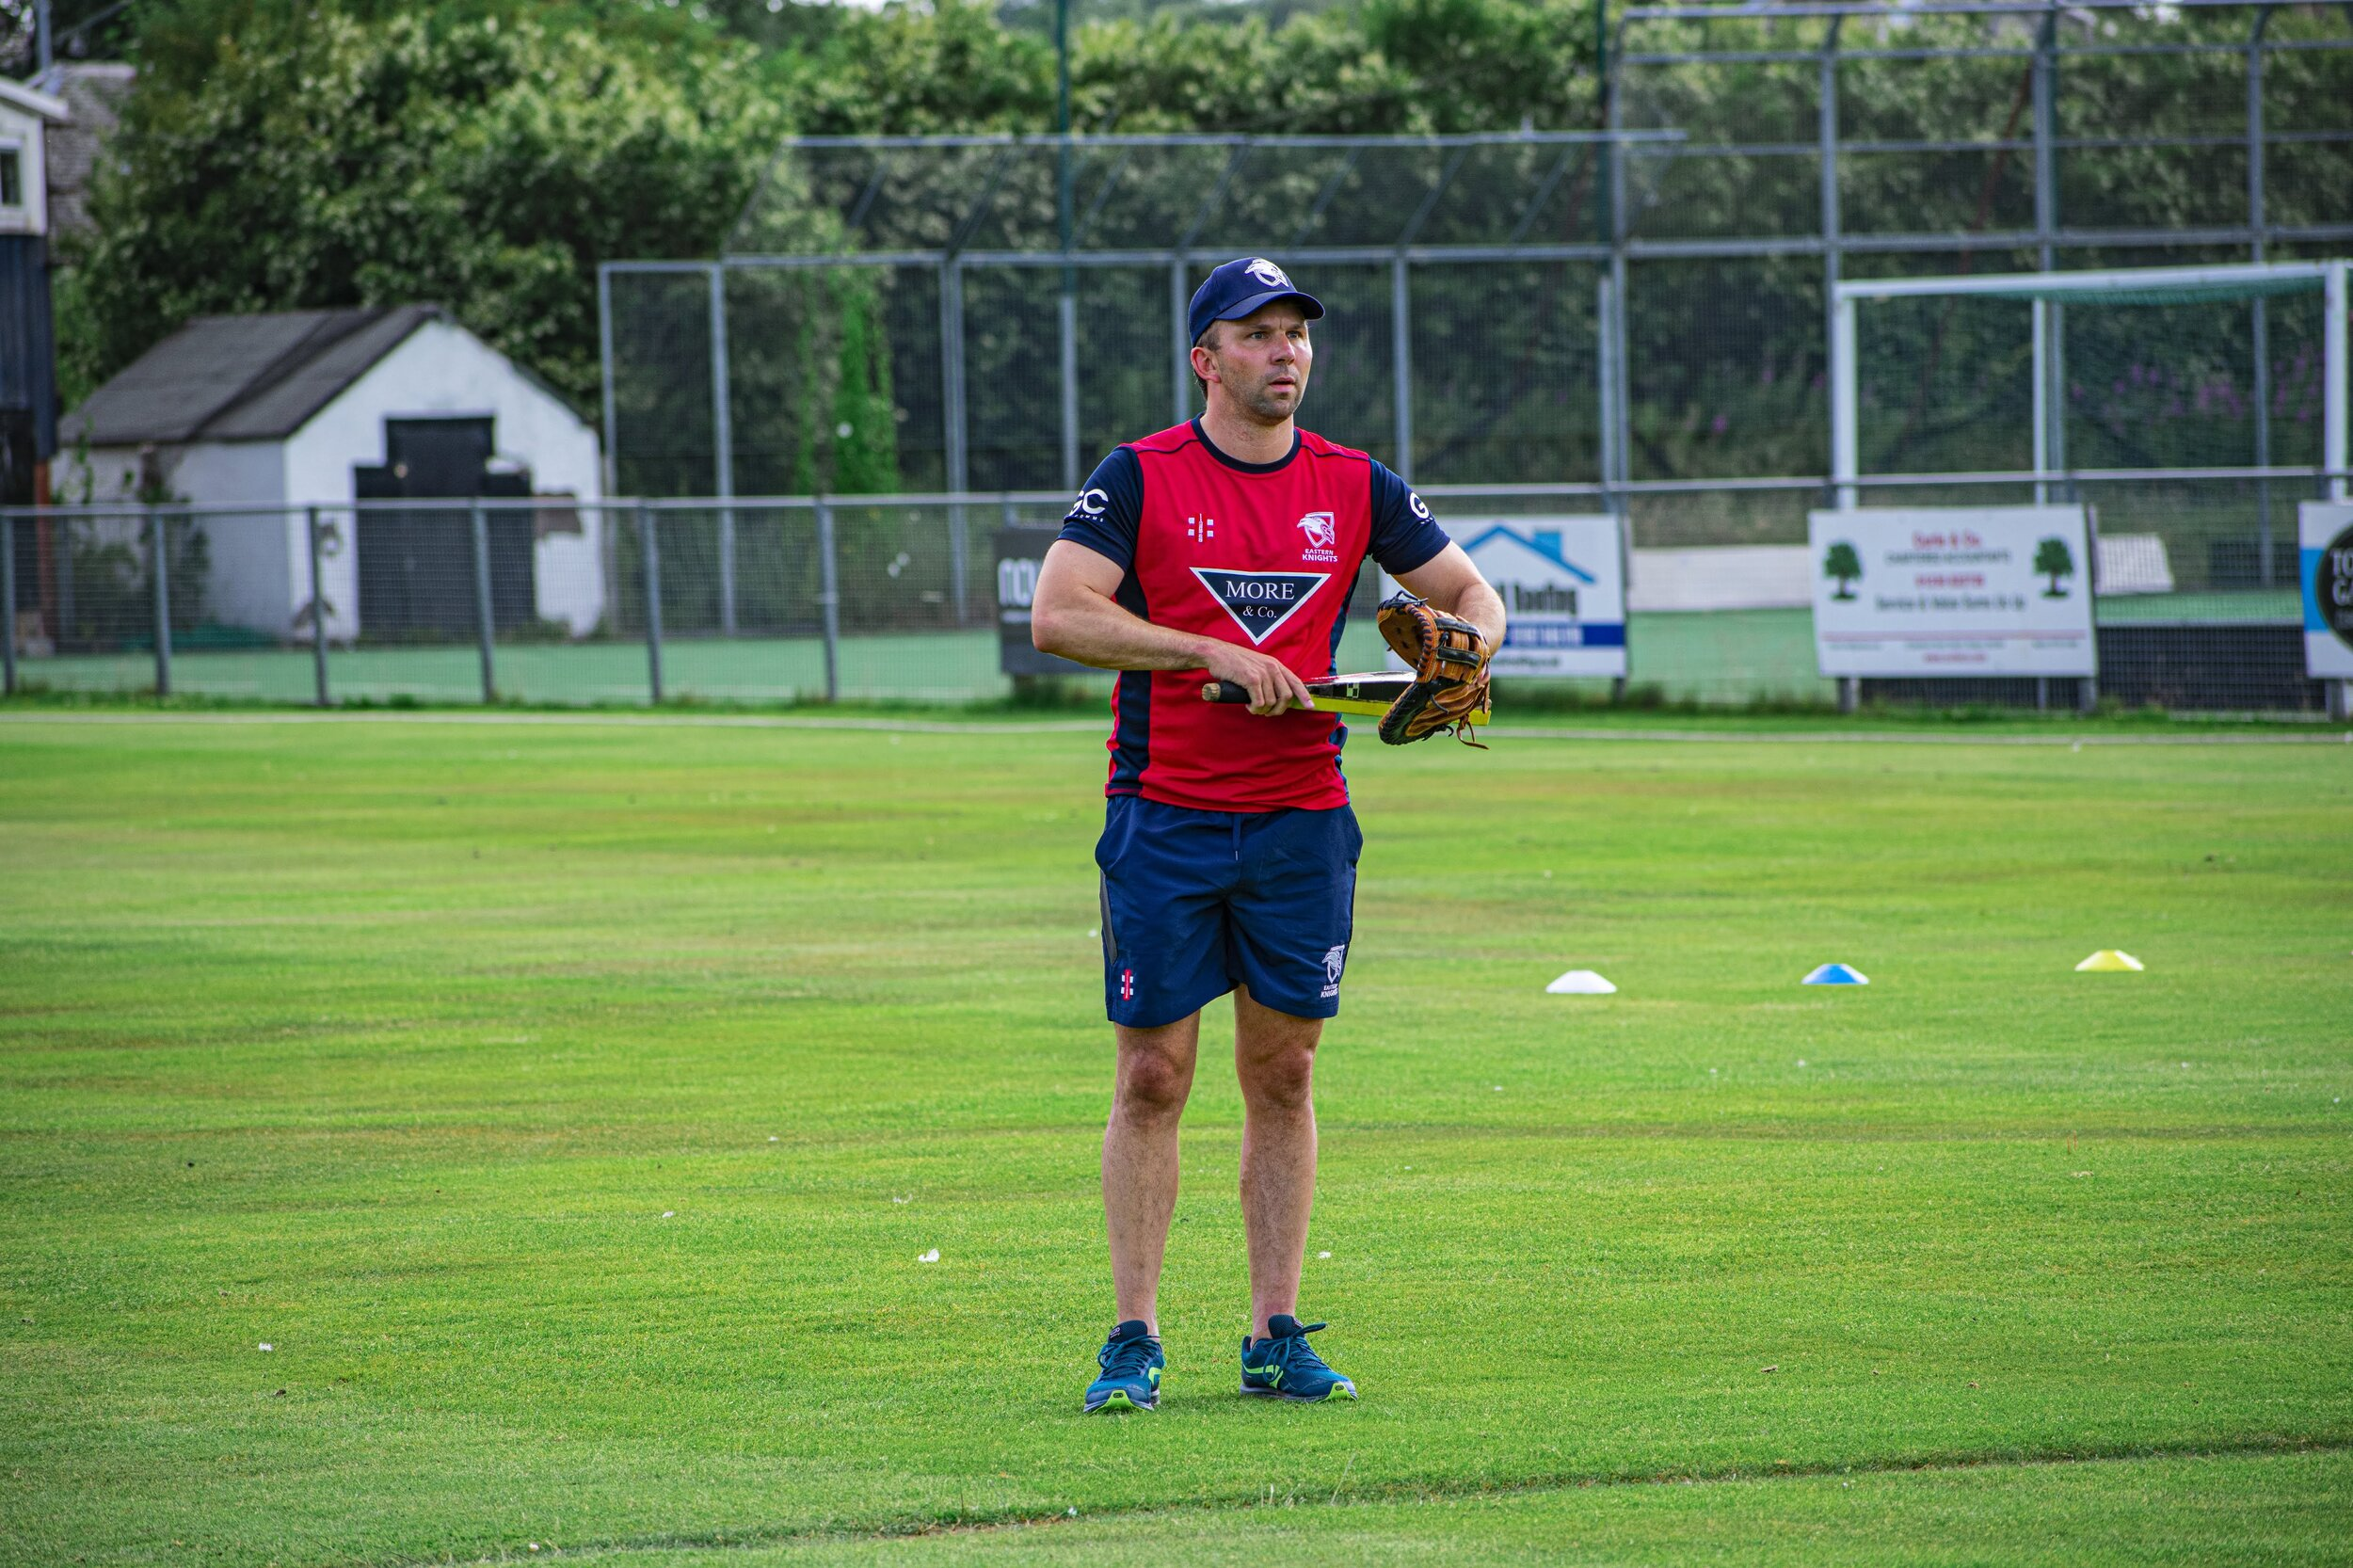 FRASER WATTS - ASSISTANT COACH